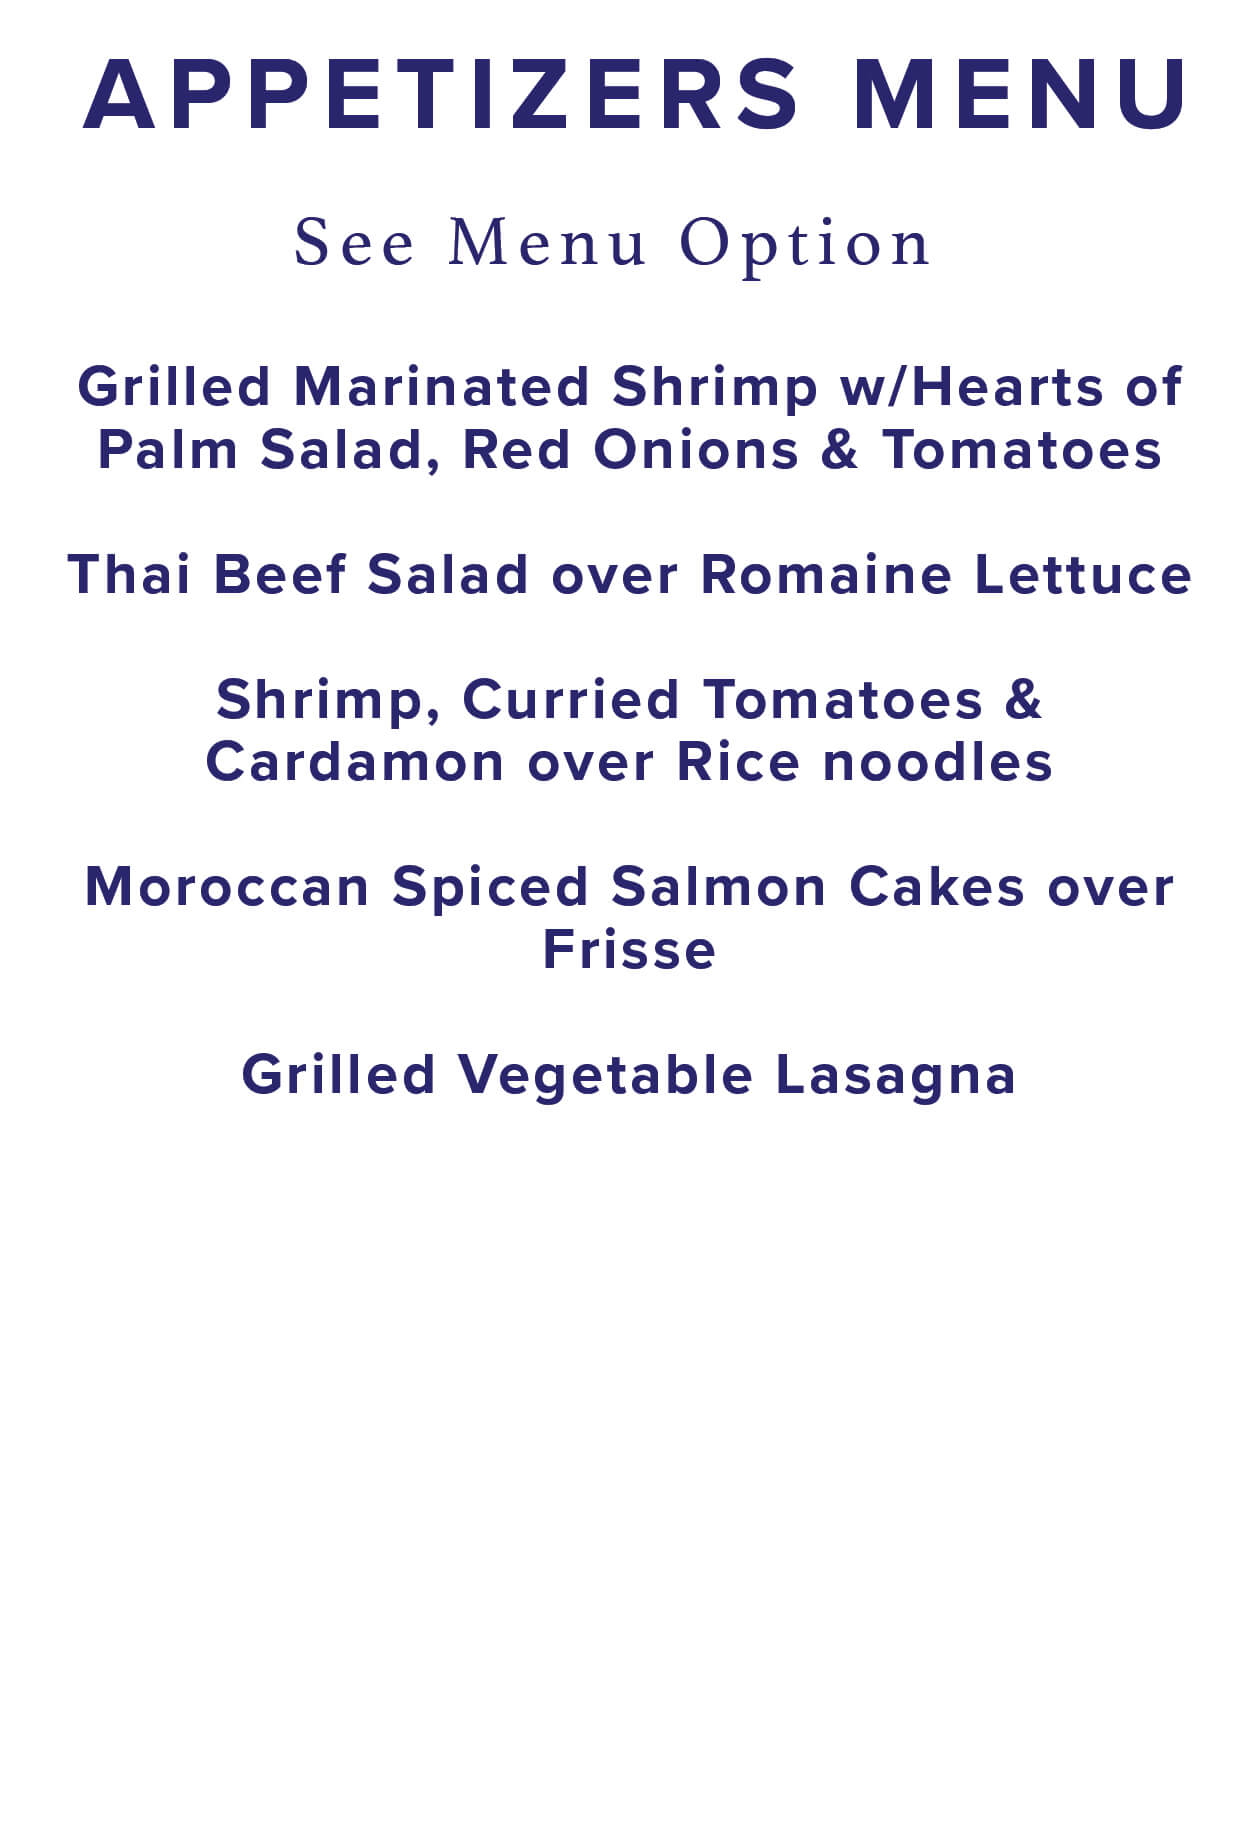 Appetizers menu selection